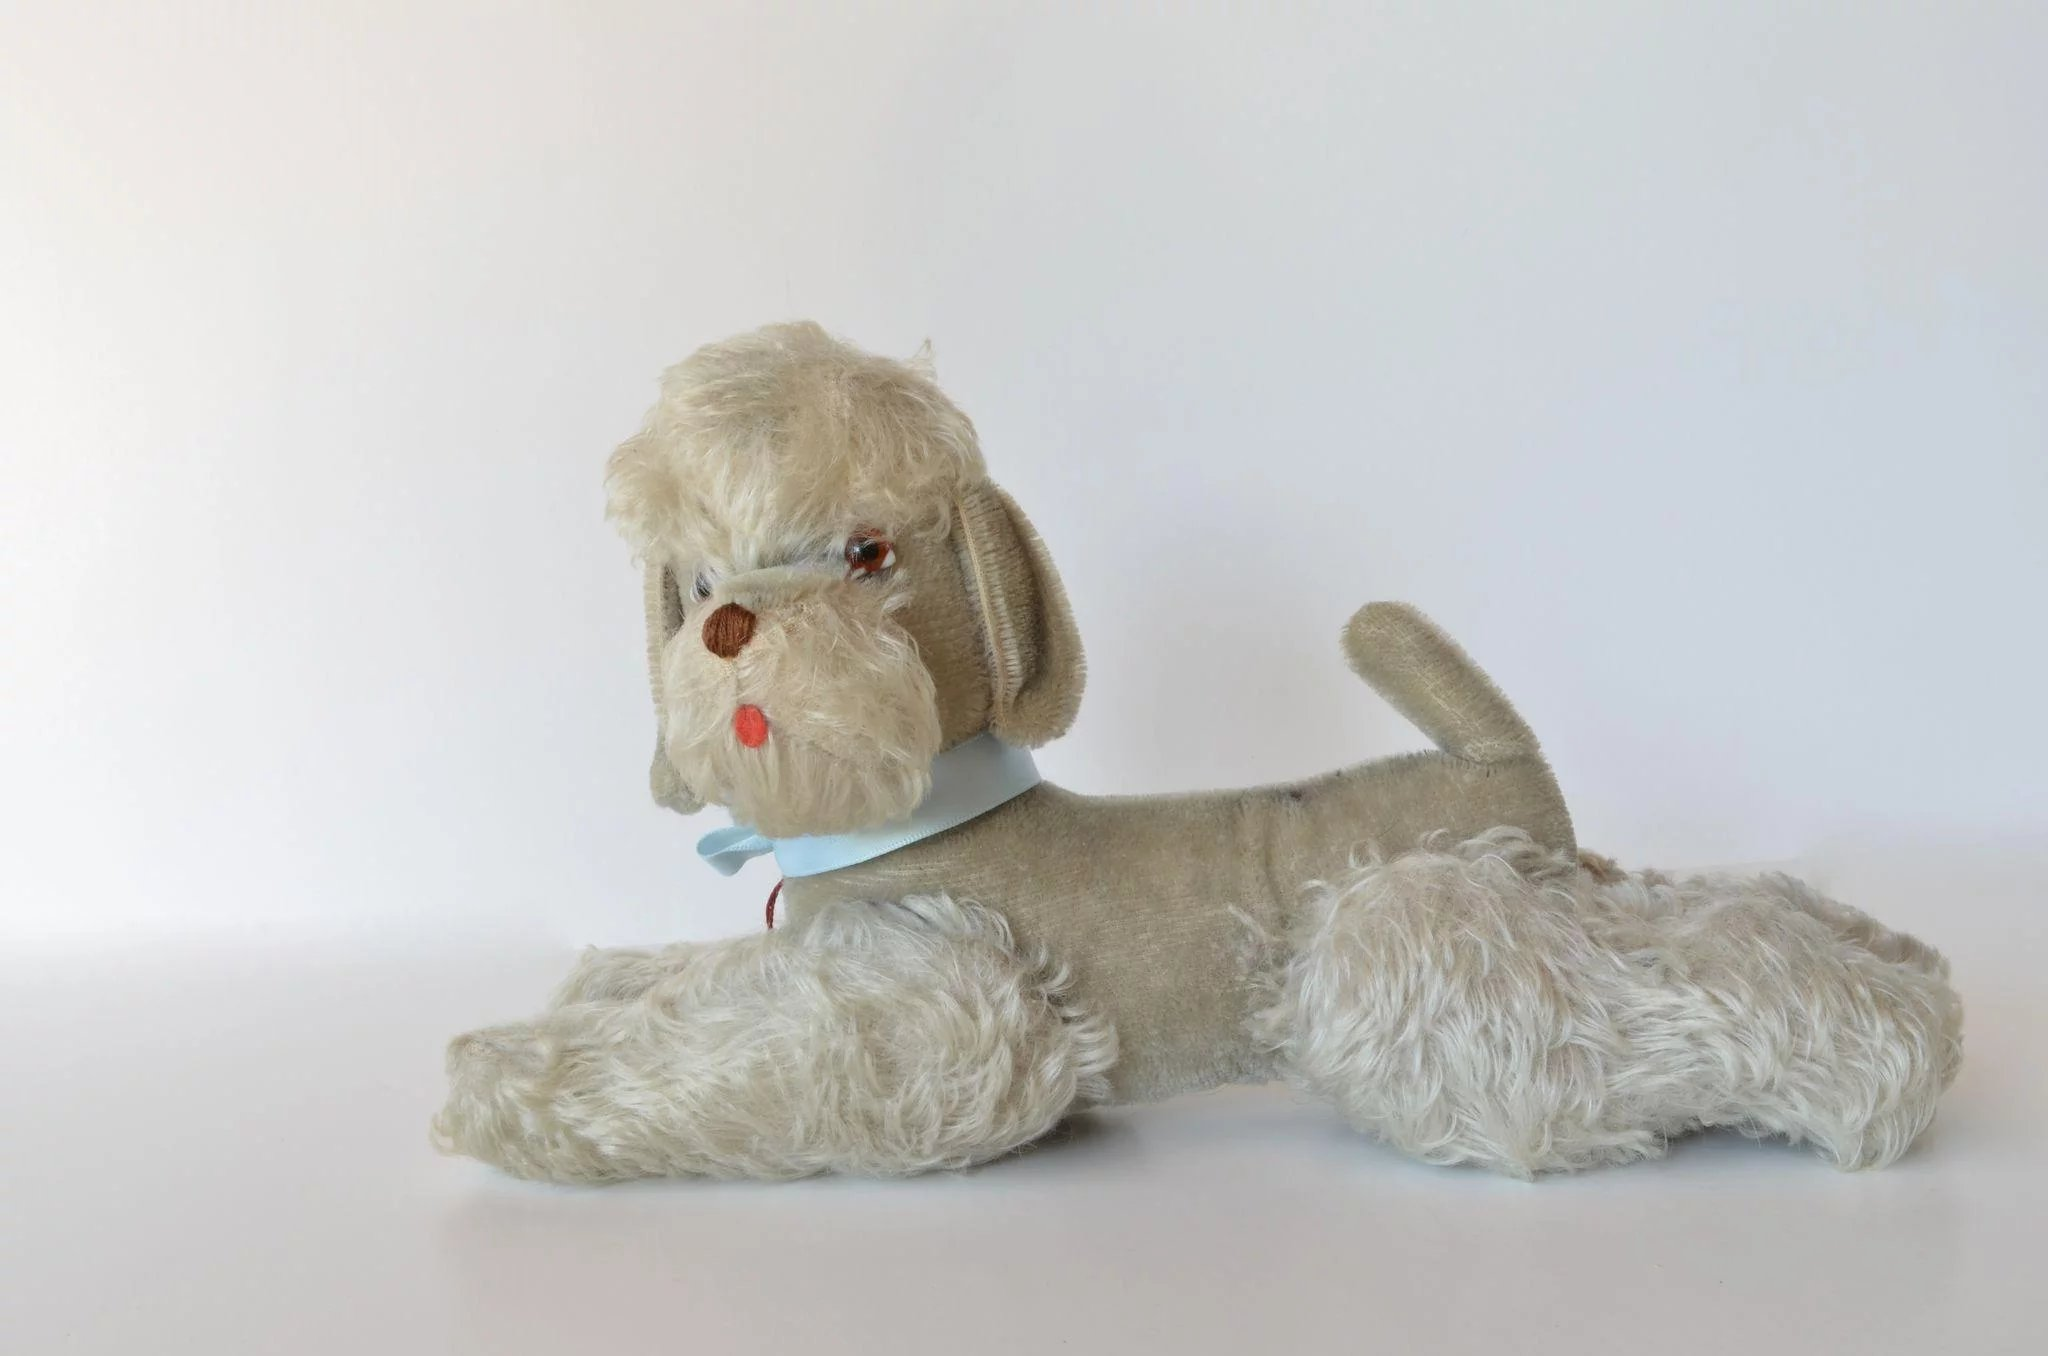 A Soft Stuffed Toy French Poodle Early Vintage Caragh Antiques